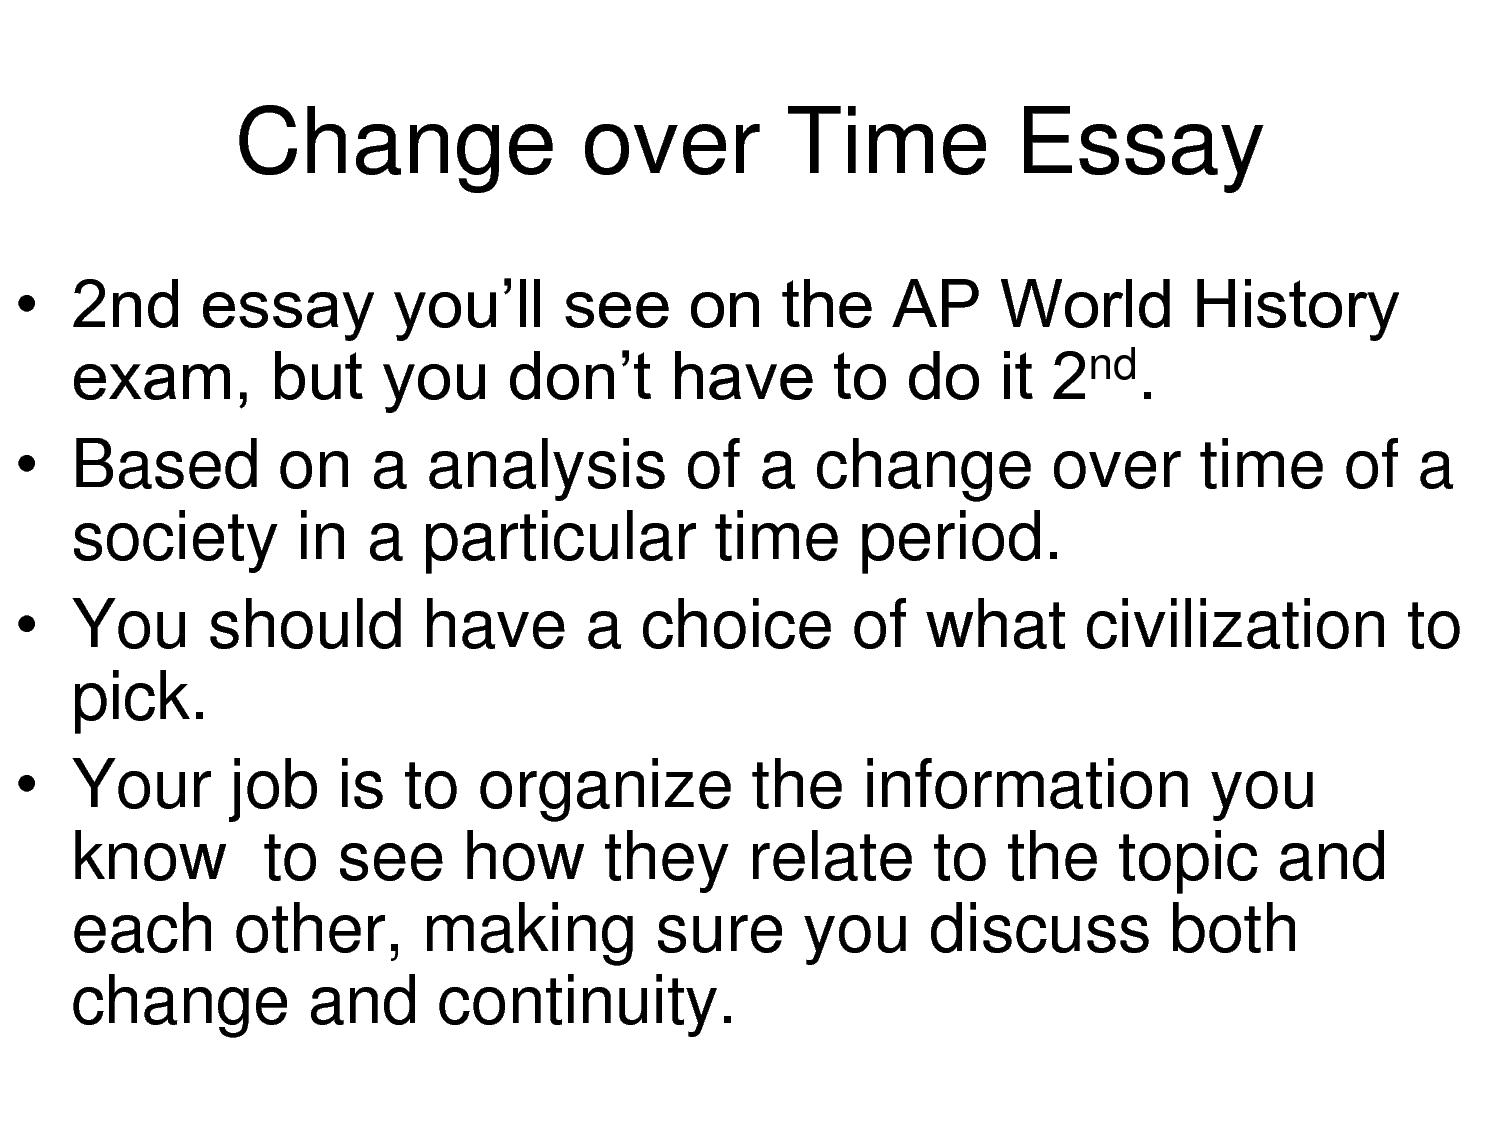 an essay about world history Humanity since prehistory, changing historical circumstances and  world  history essay writing assistance is available at advanced writers service.